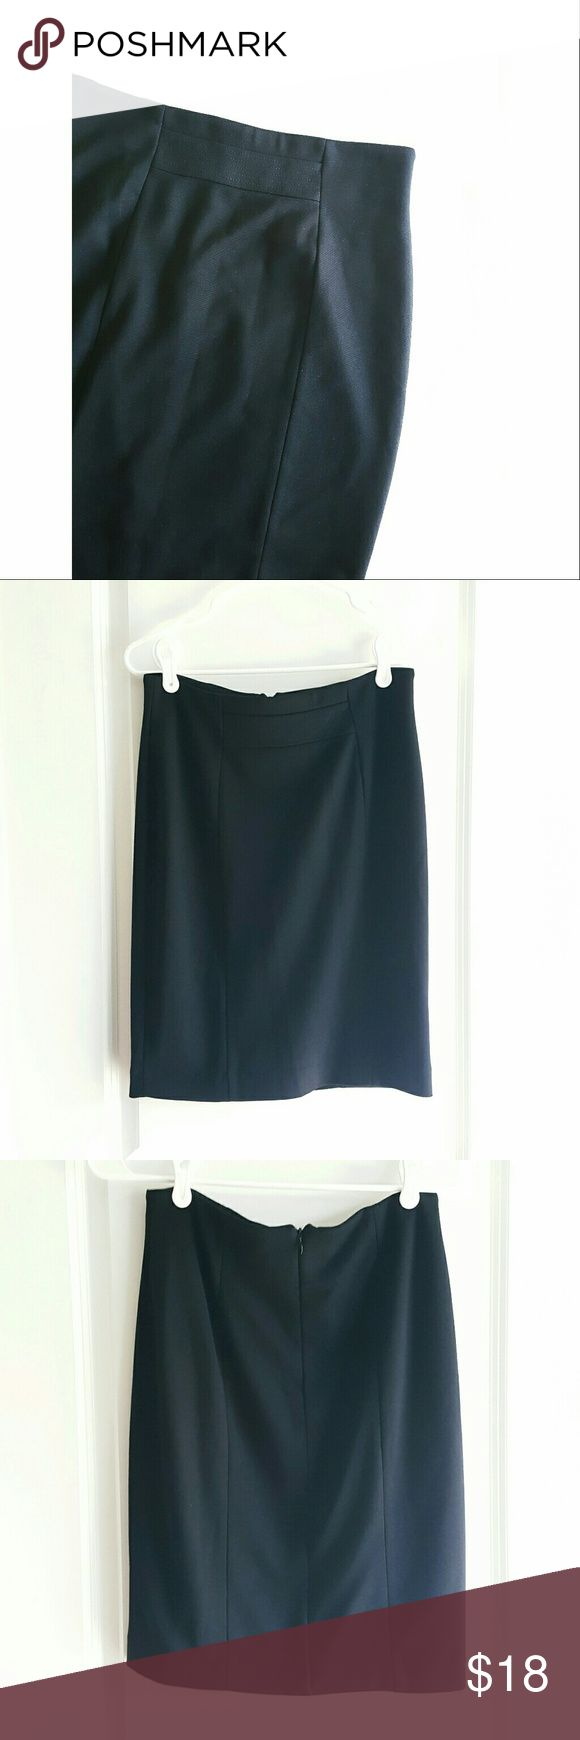 Adrienne Vittadini Black Pencil Skirt Wow in the workplace with this pencil skirt by Adrienne Vittadini. Back zipper. 💚EUC ❣ Every listing purchased enters you in for a gift card drawing at the end of the month. Adrienne Vittadini Skirts Pencil